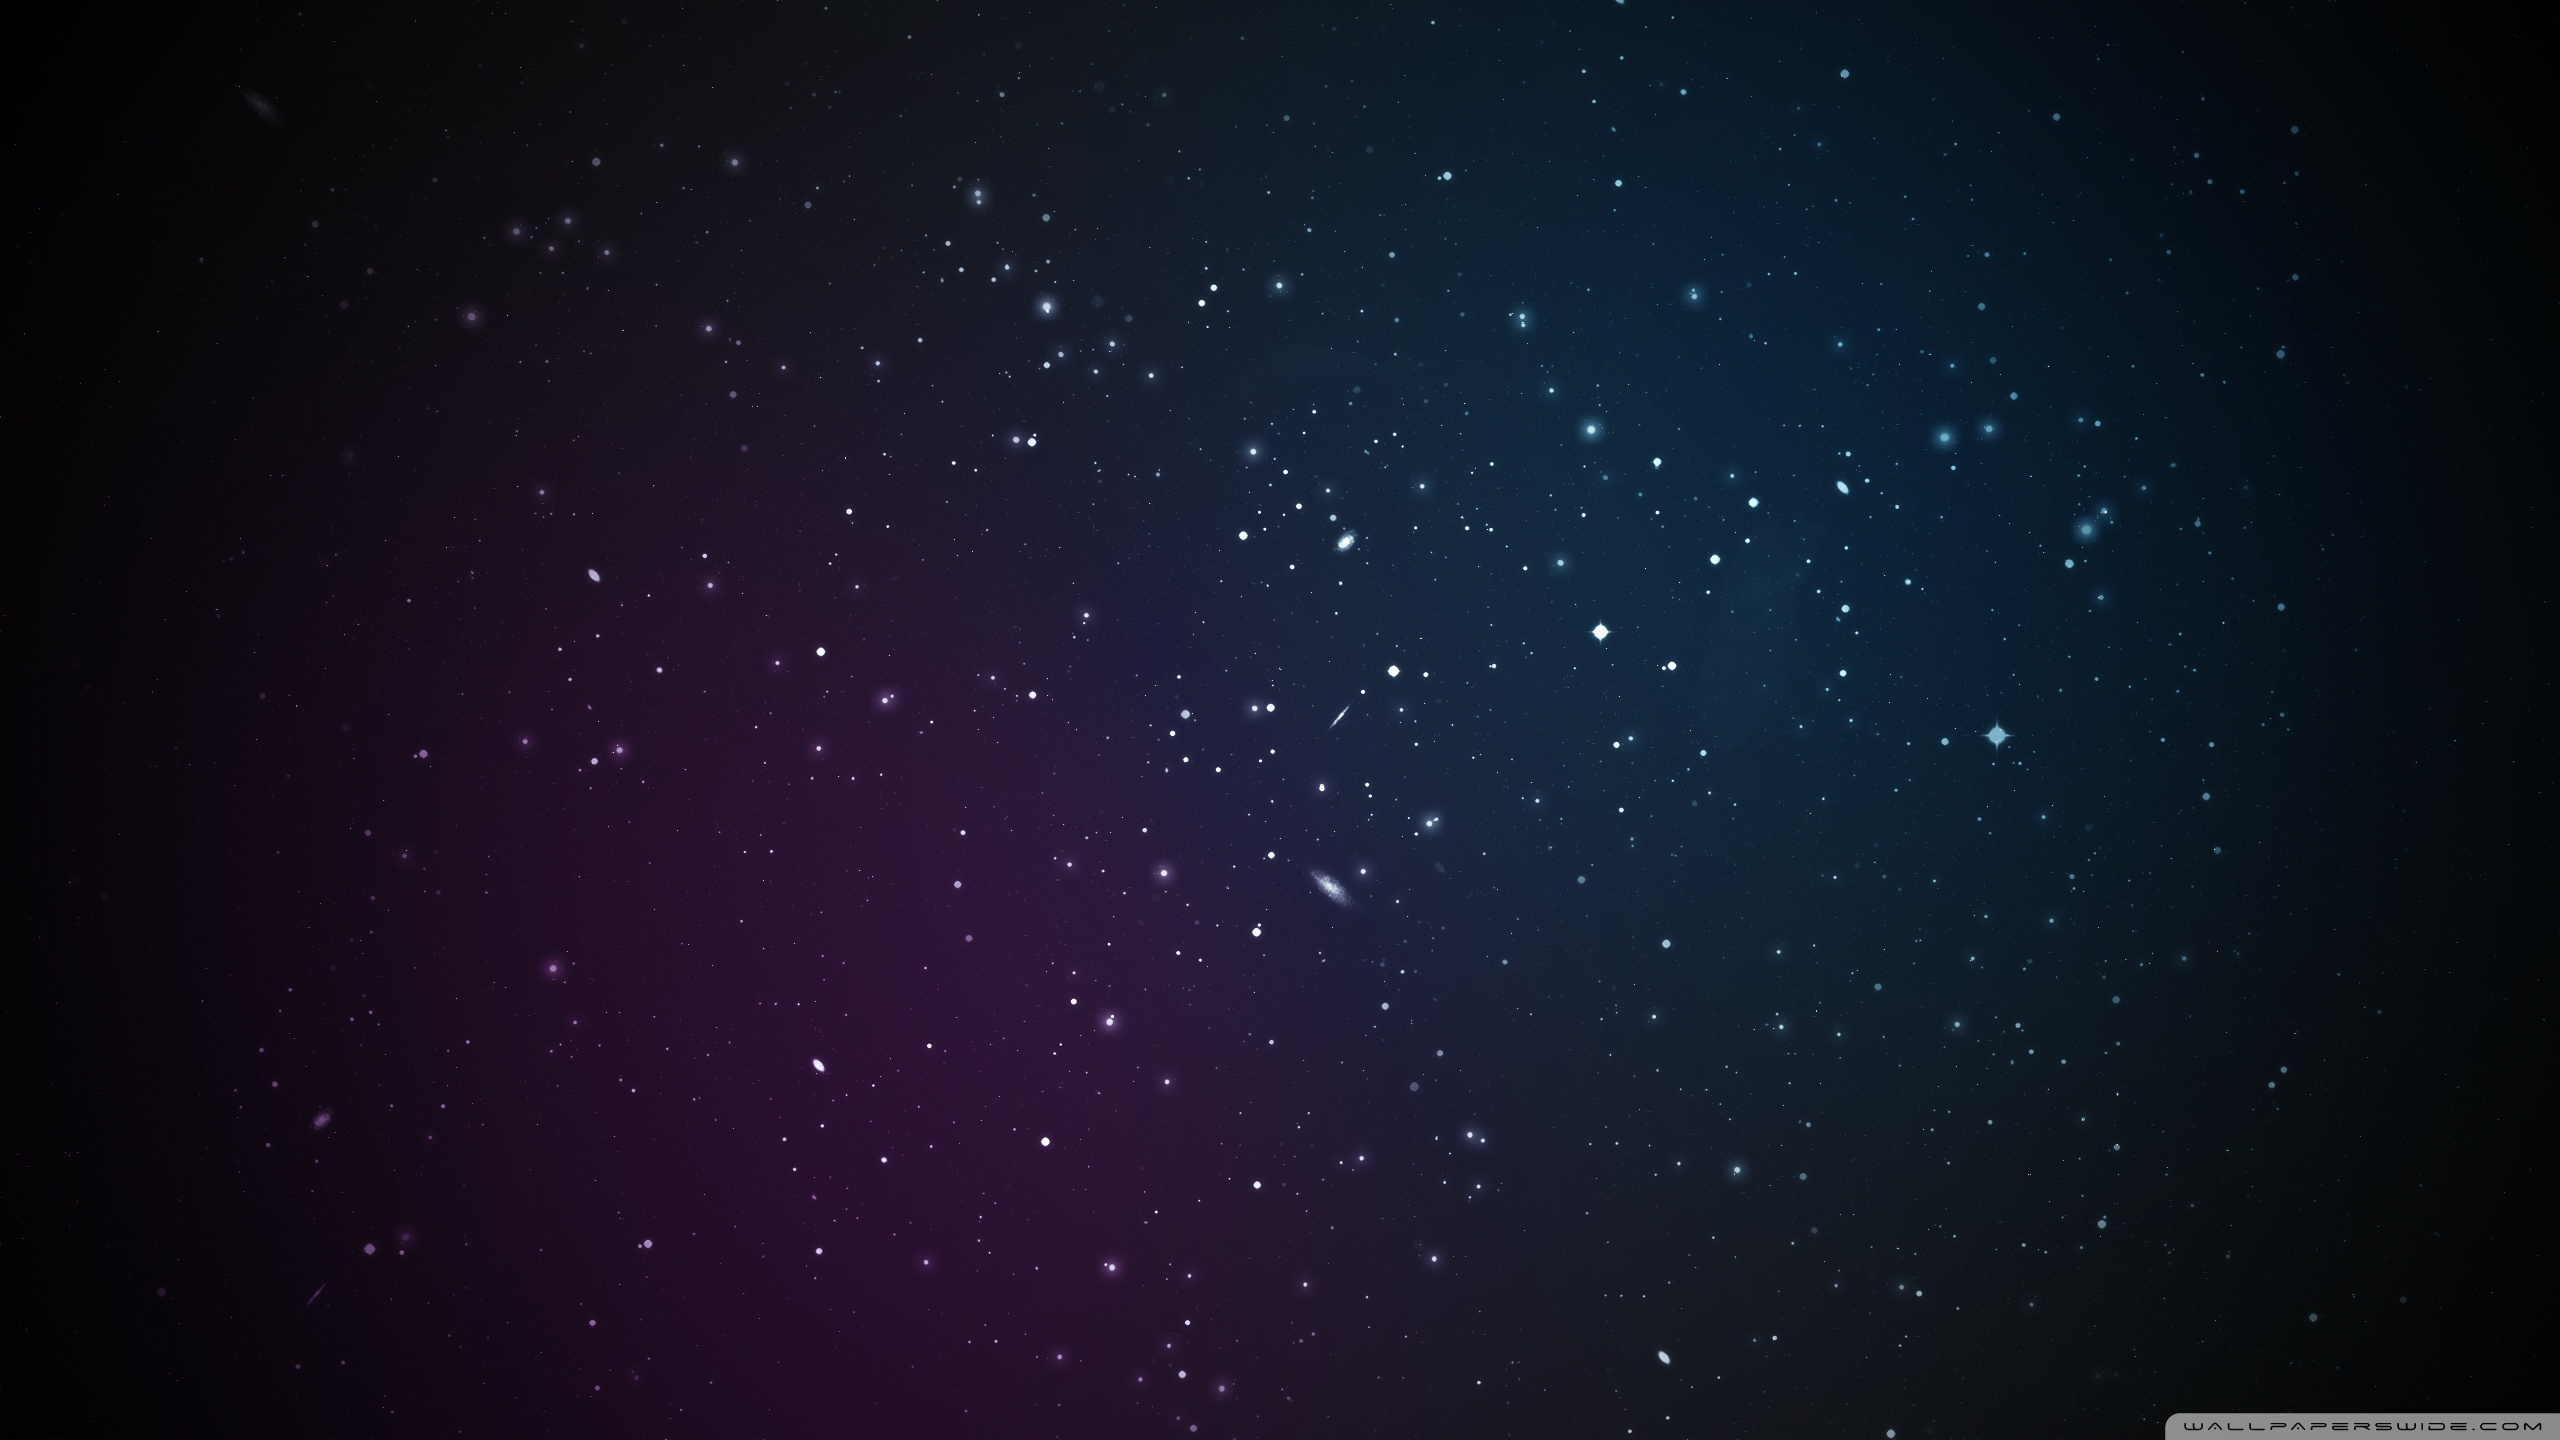 Galaxy Hd Wallpaper 2560x1440 44012